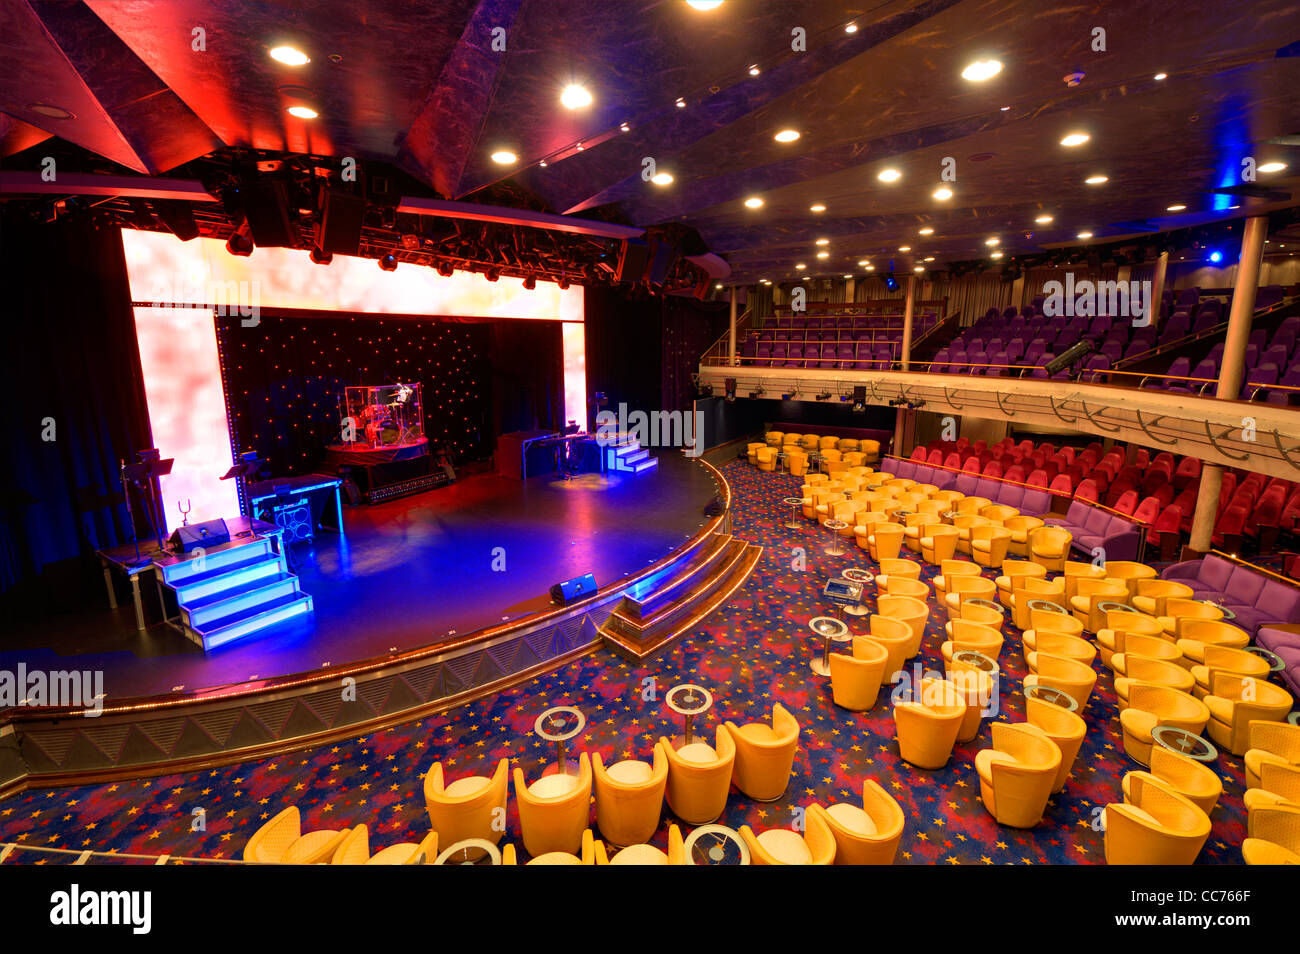 Performance hall and stage - Stock Image